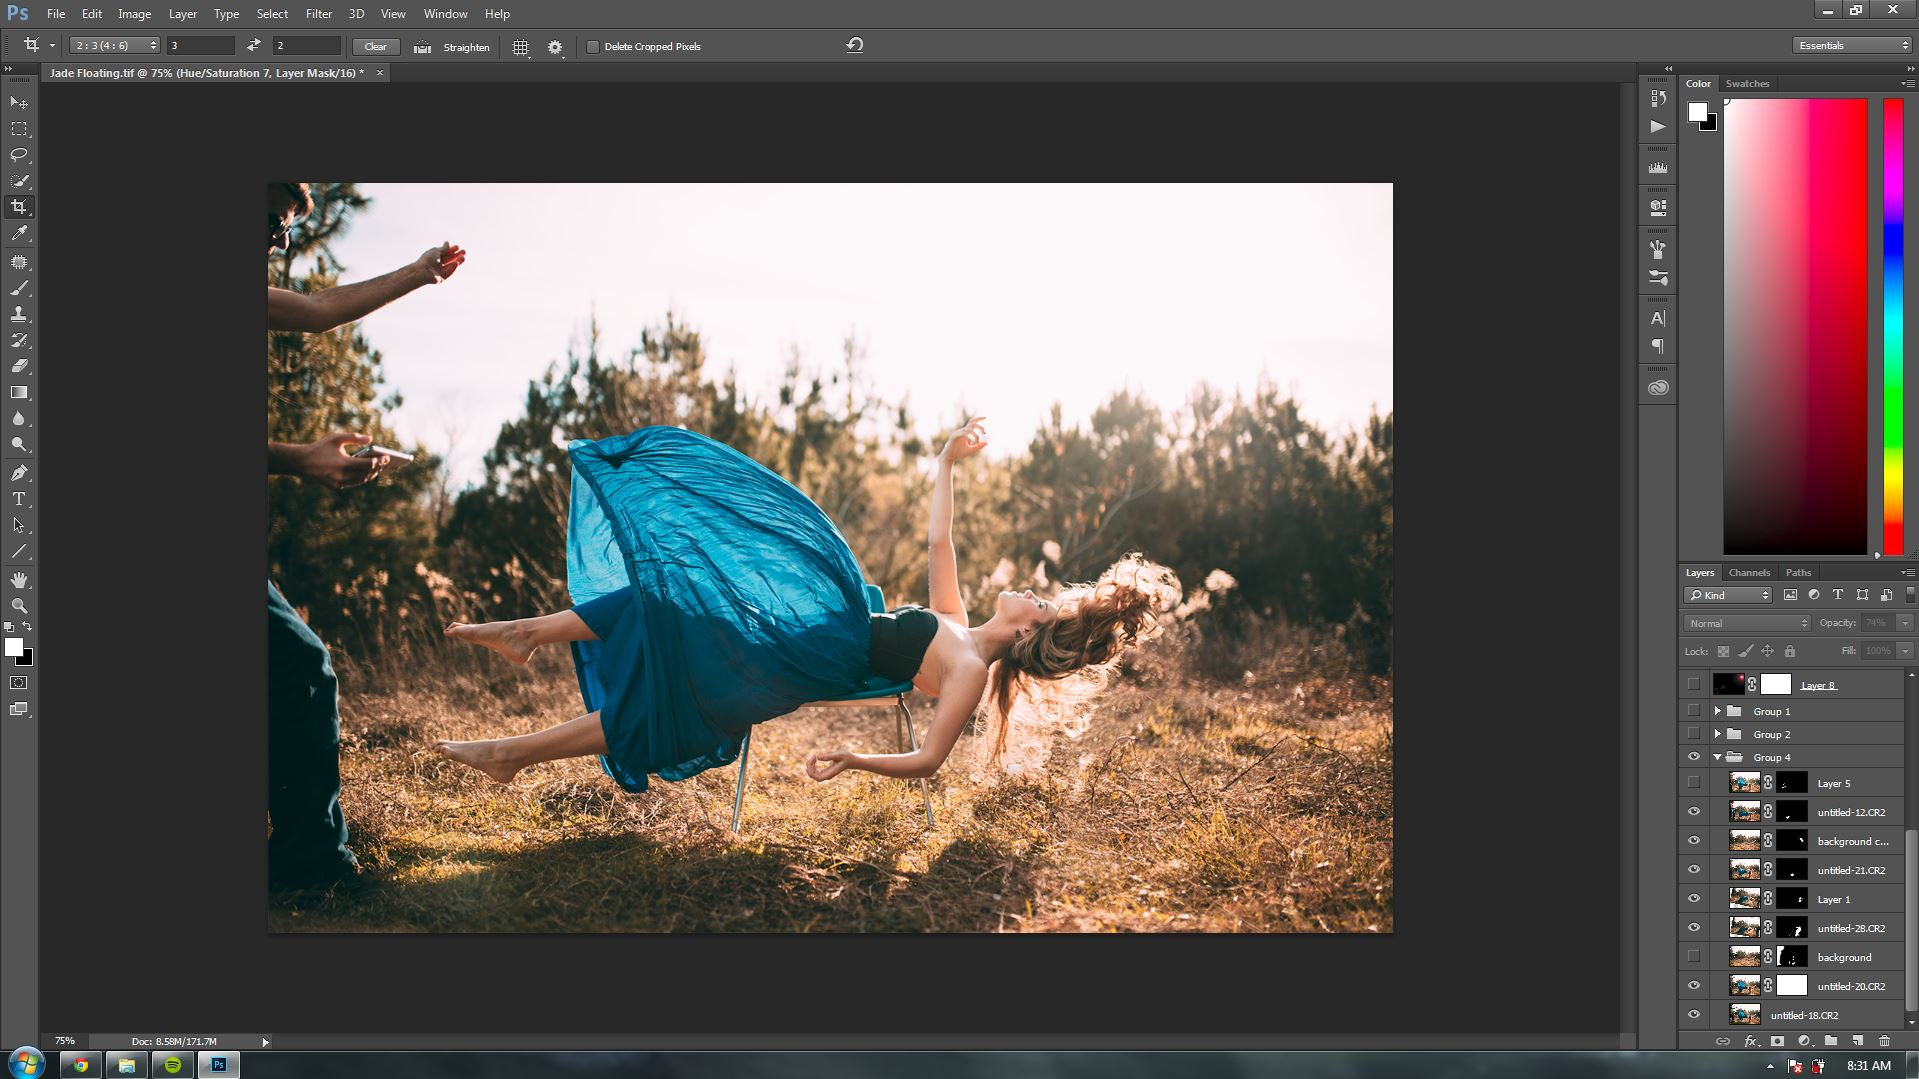 Next step was to combine the images that I liked, the hand, the hair, and the dress flip, into one photo.